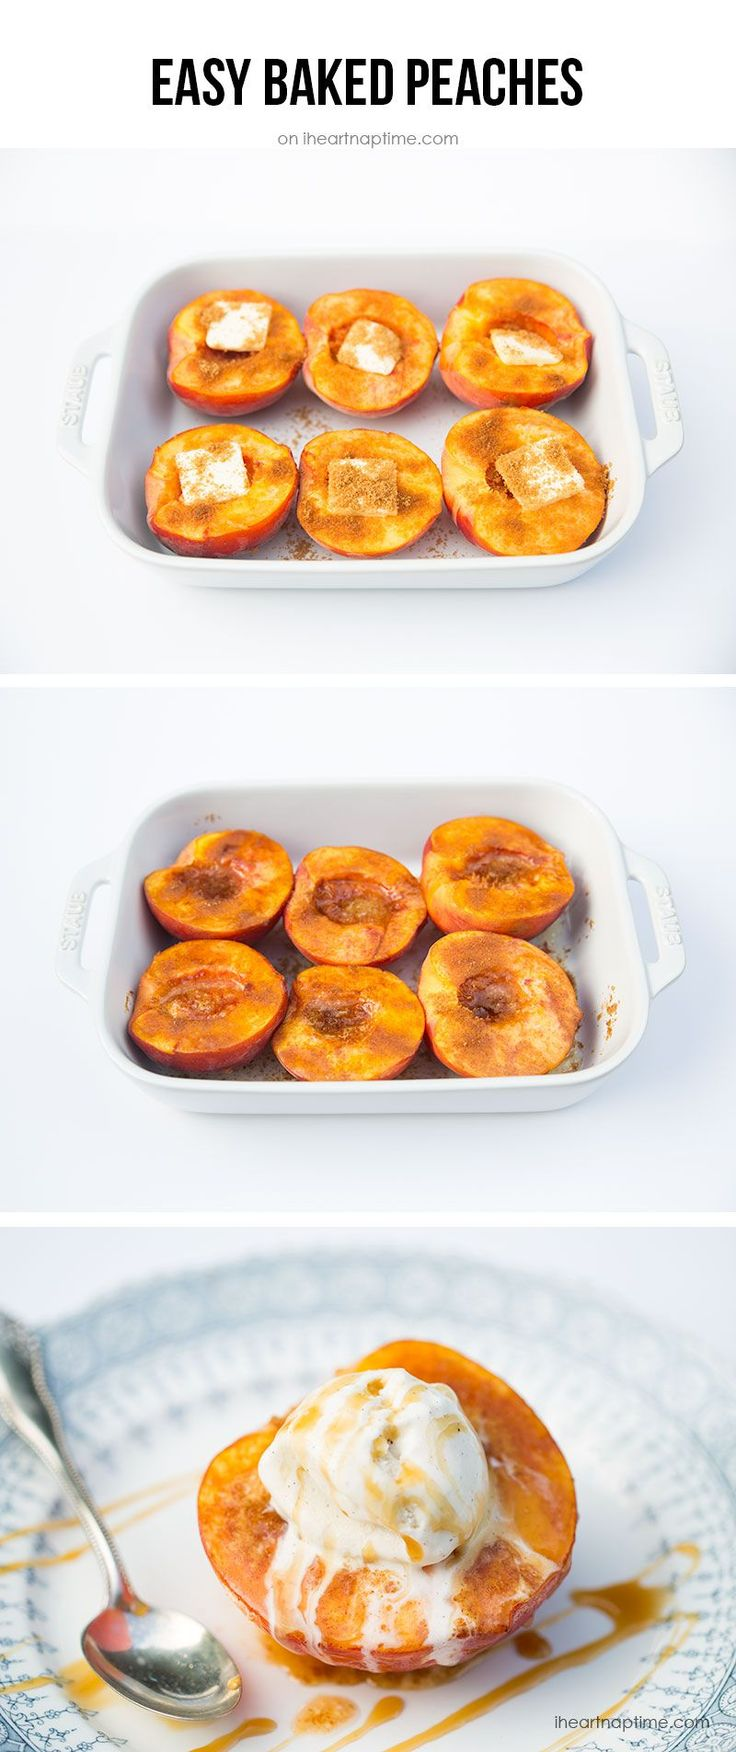 Baked peaches with brown sugar, butter and cinnamon. Tastes like a homemade peach pie.